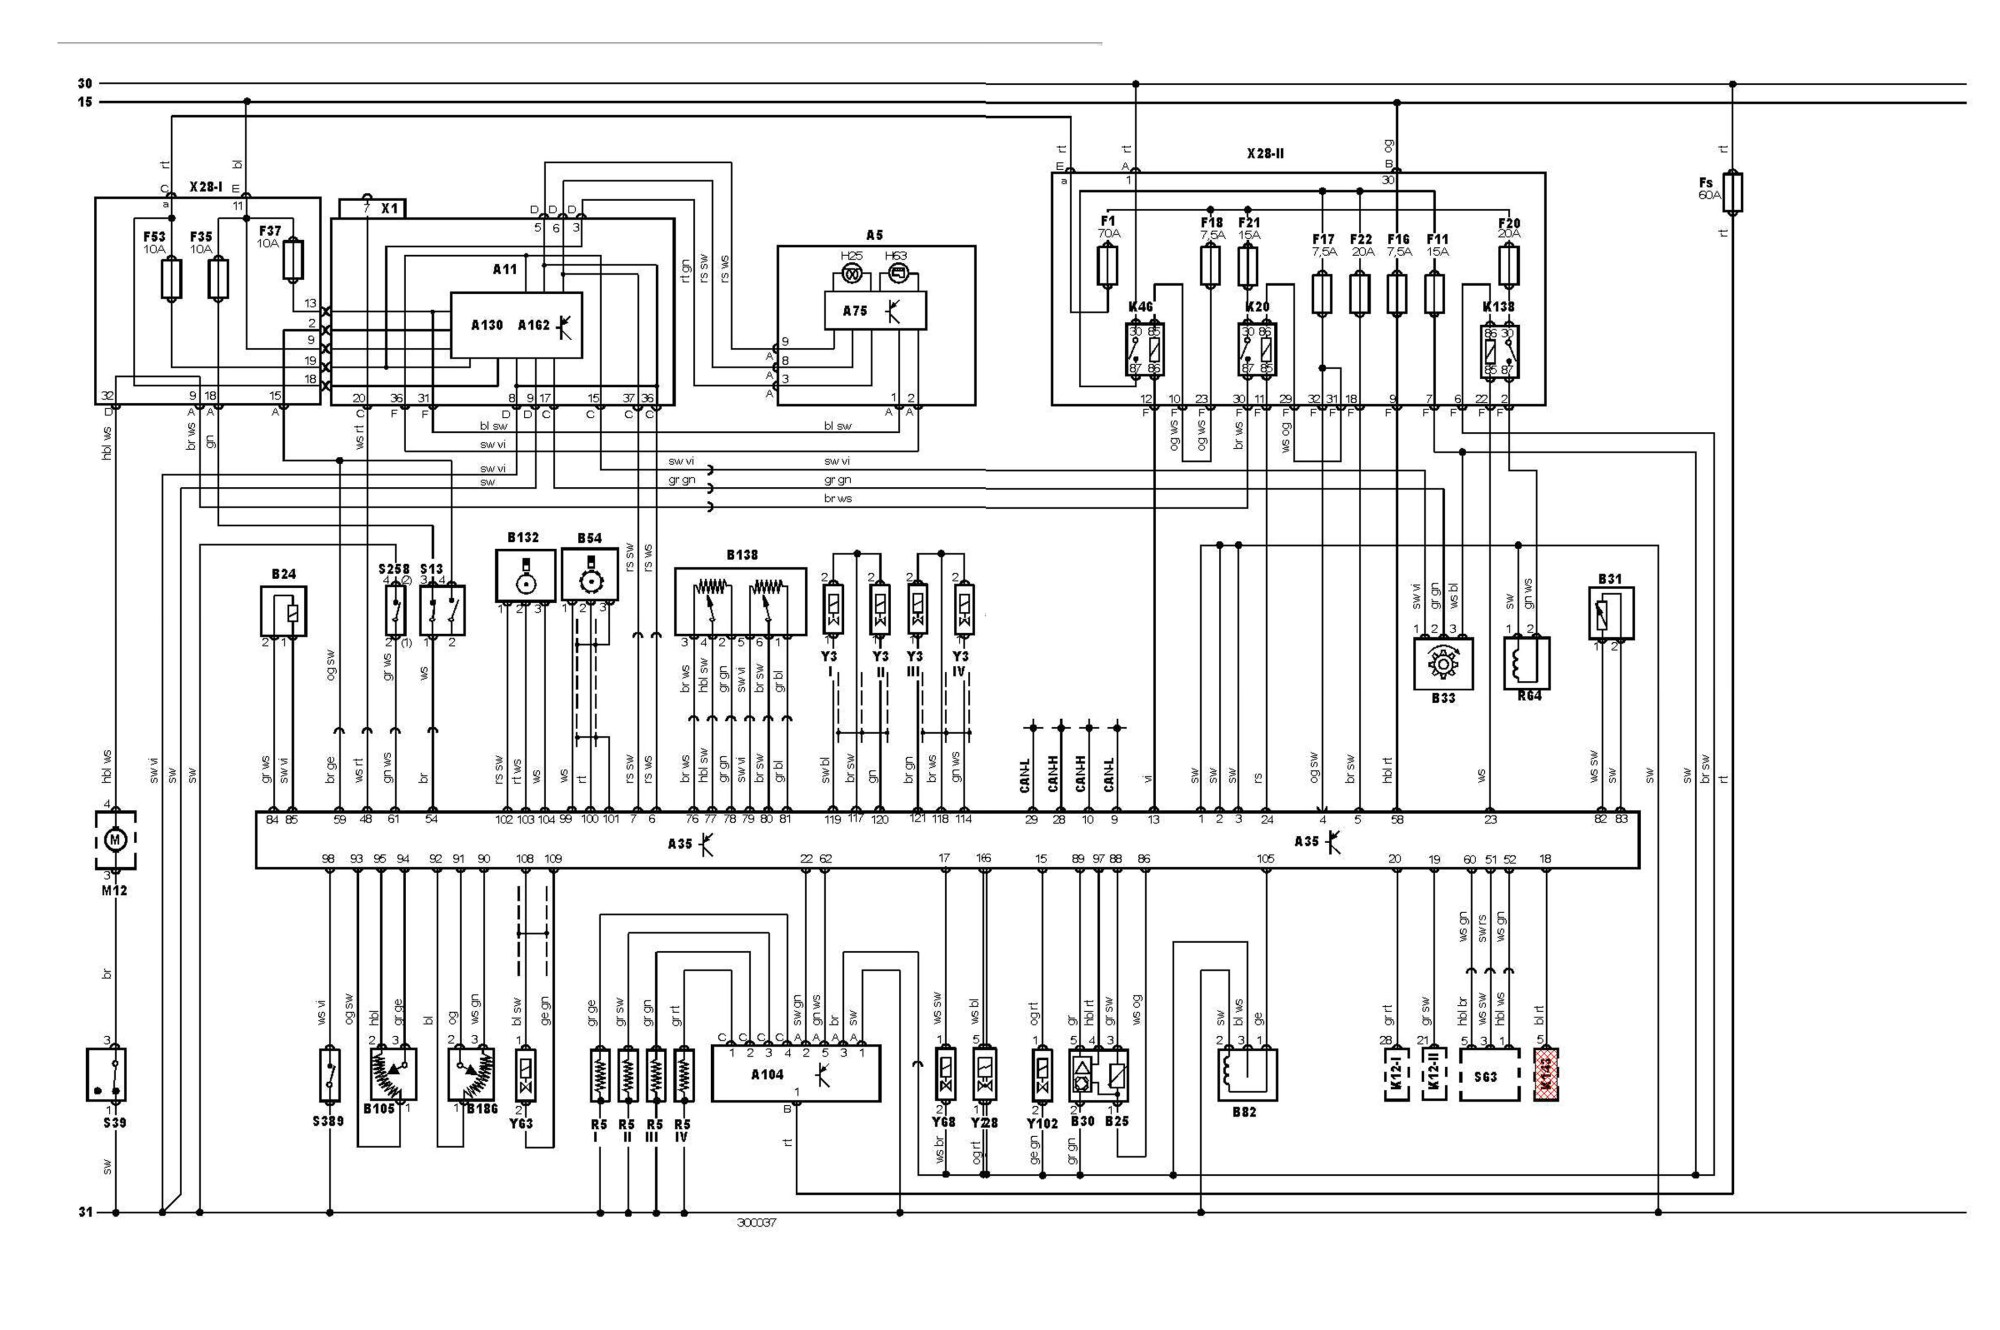 hight resolution of fiat wiring diagrams electrical schematic wiring diagram fiat stilo 1 9 jtd wiring diagram fiat fiorino wiring